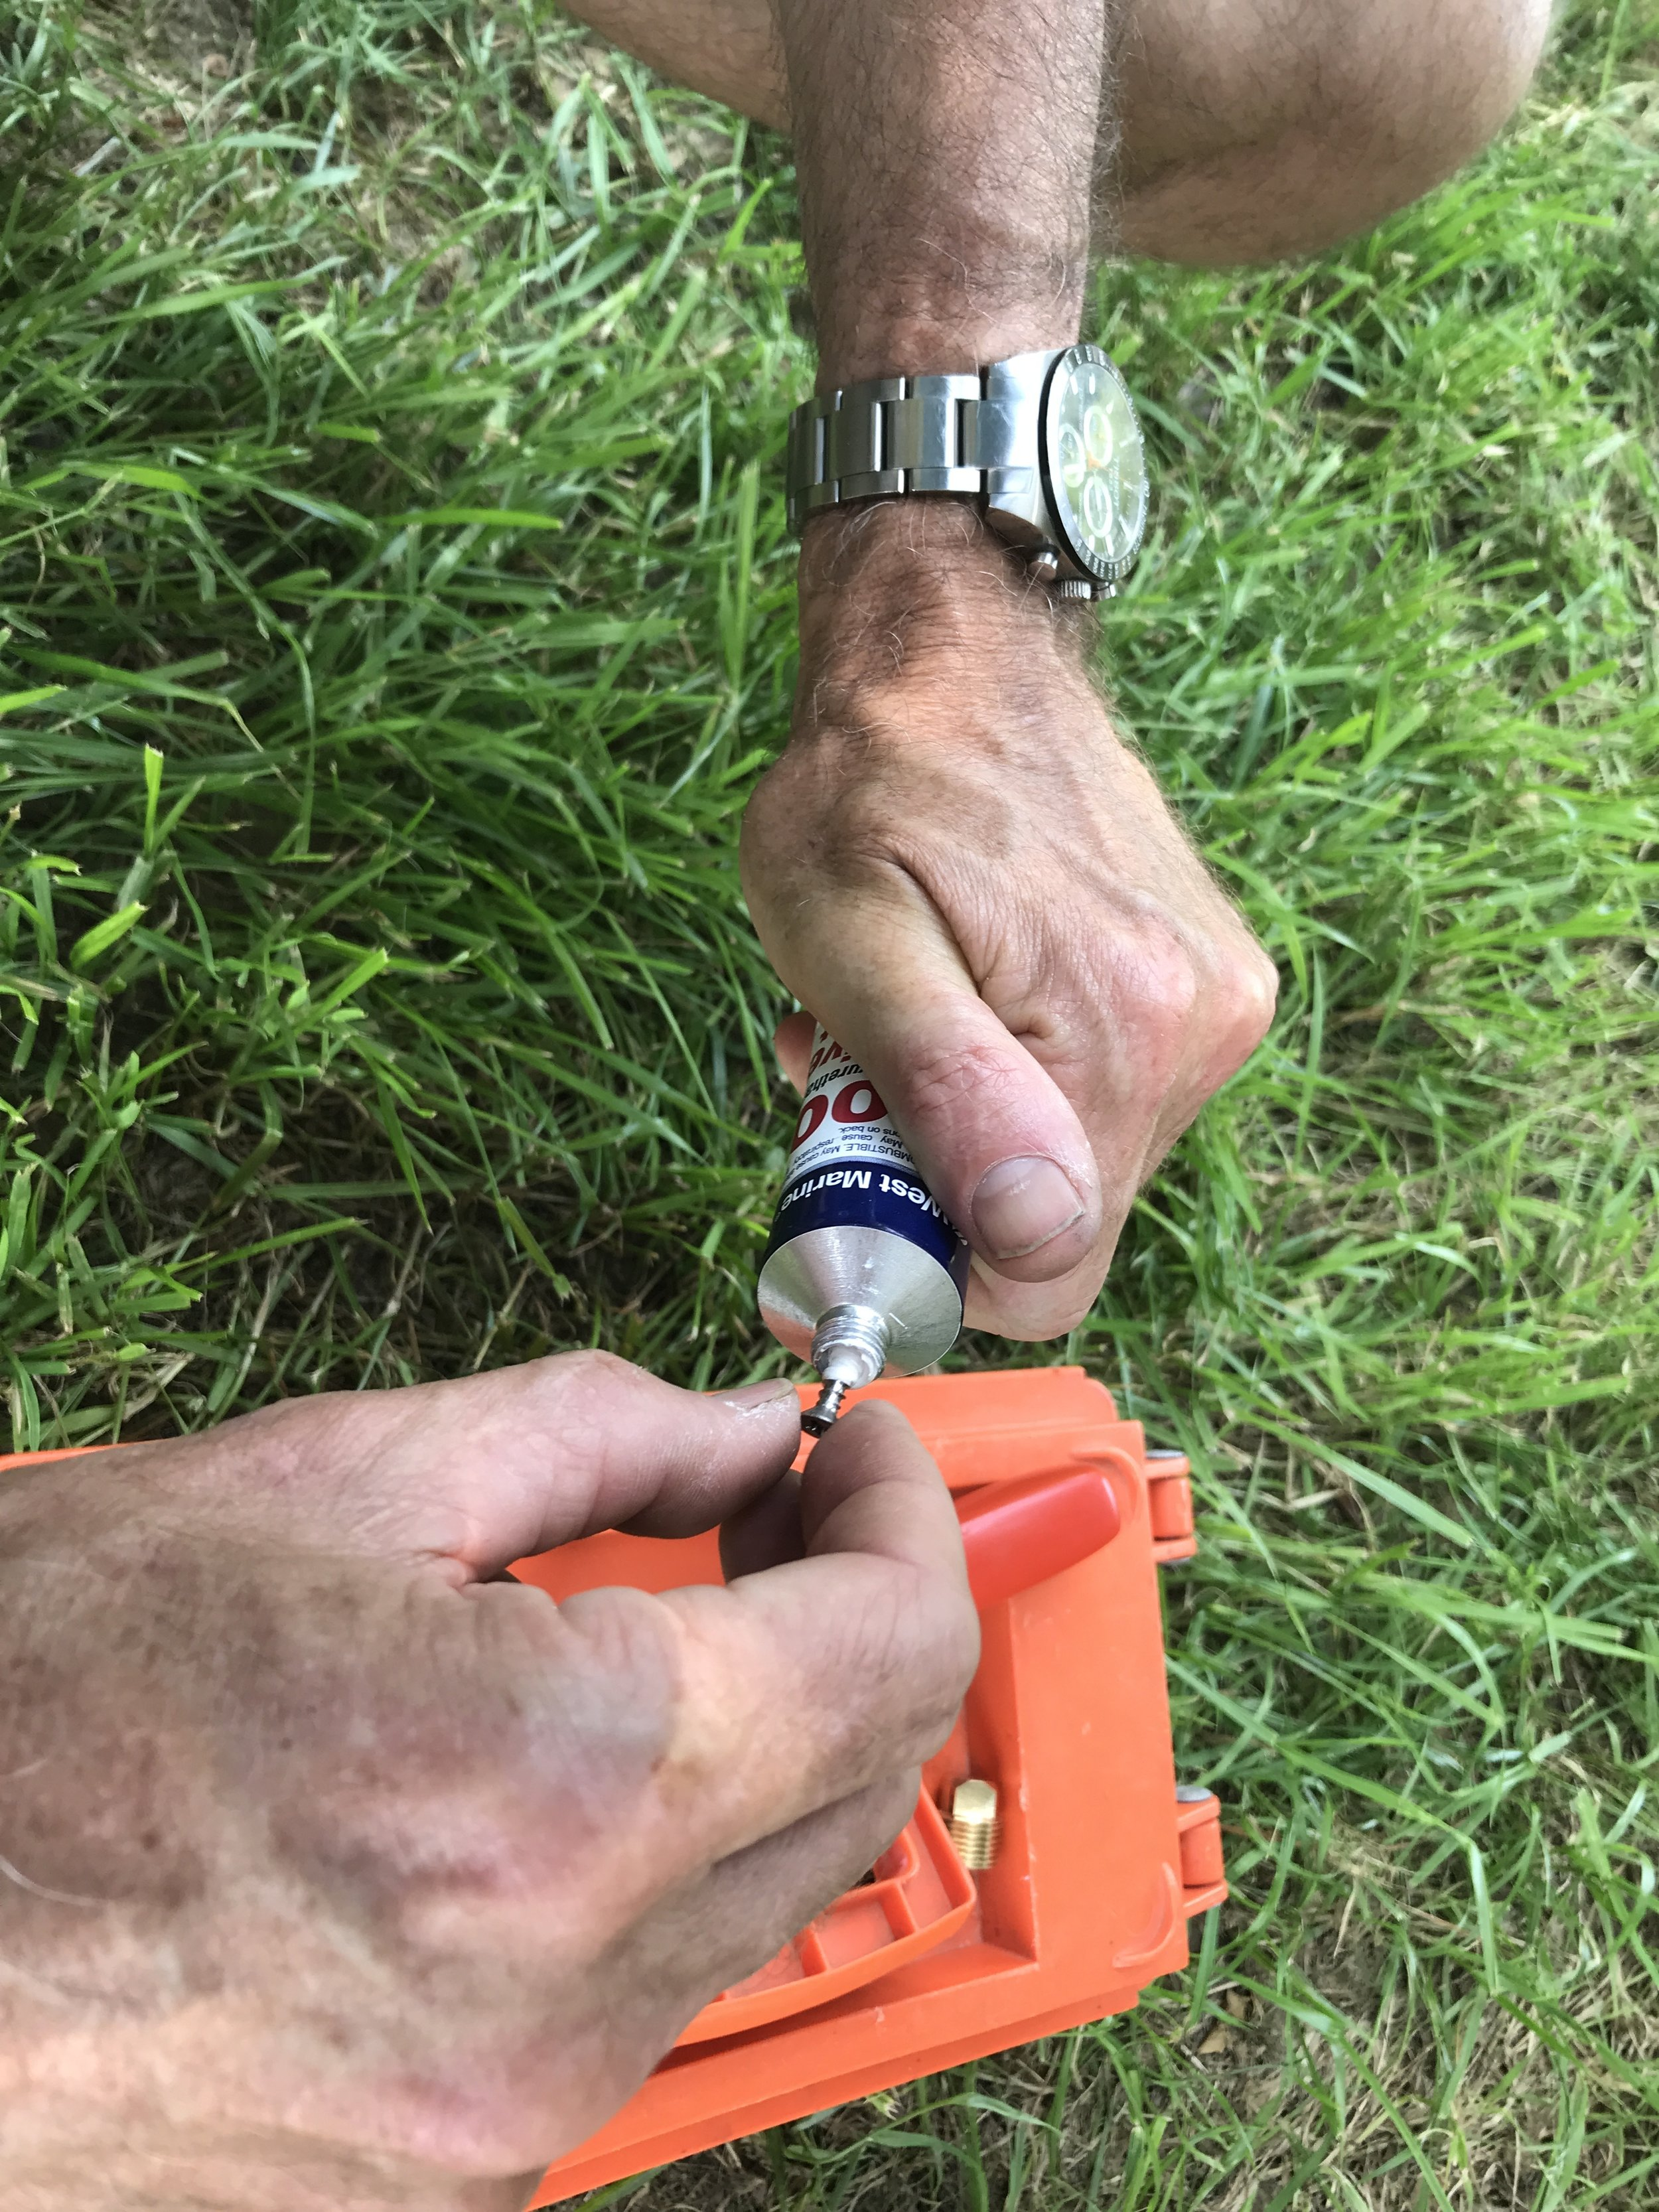 Apply sealant to the fastener - easily done by screwing the fastener into the tube.